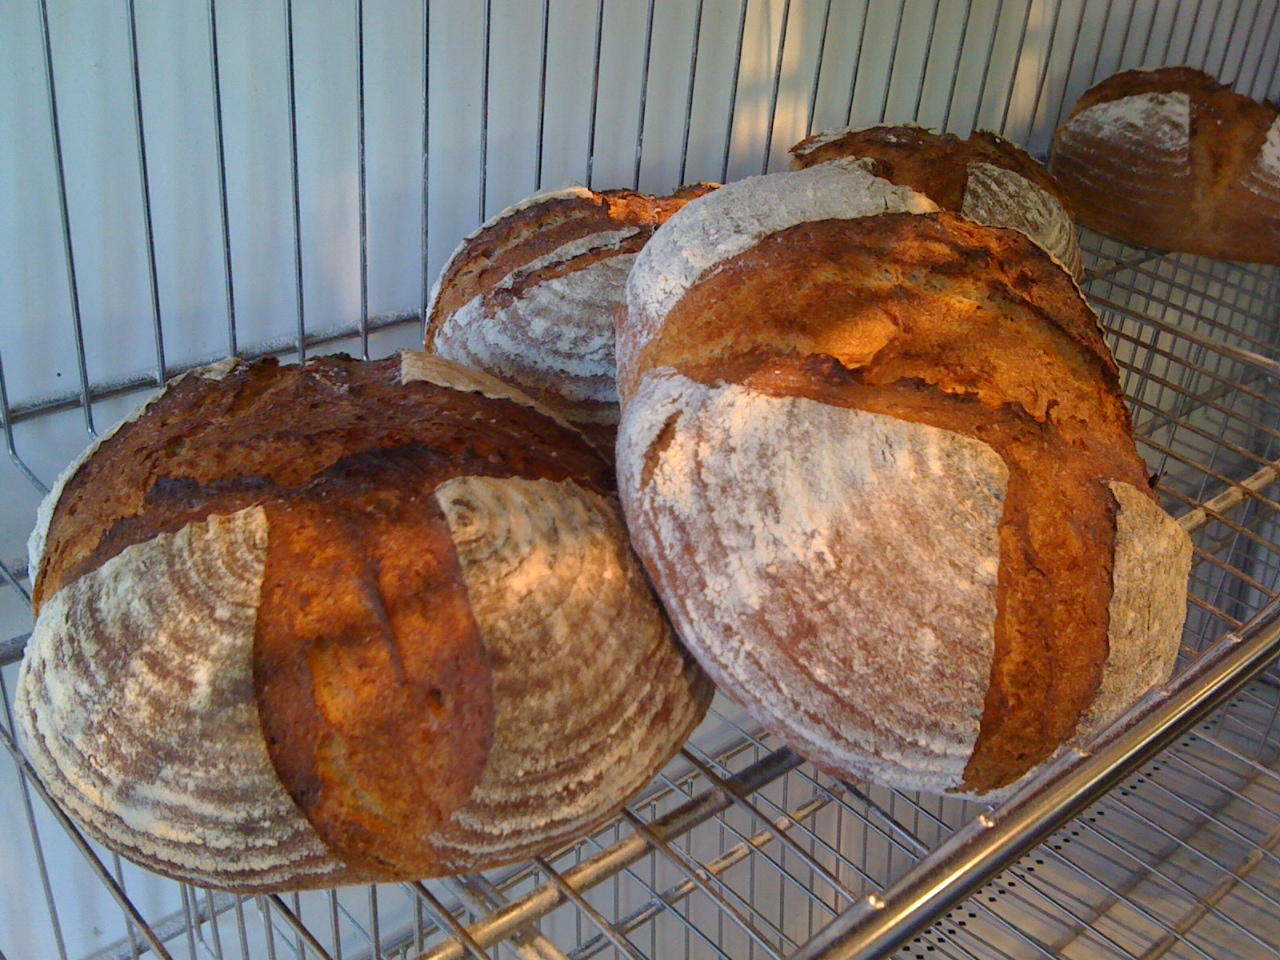 Bakery Normand: Breads